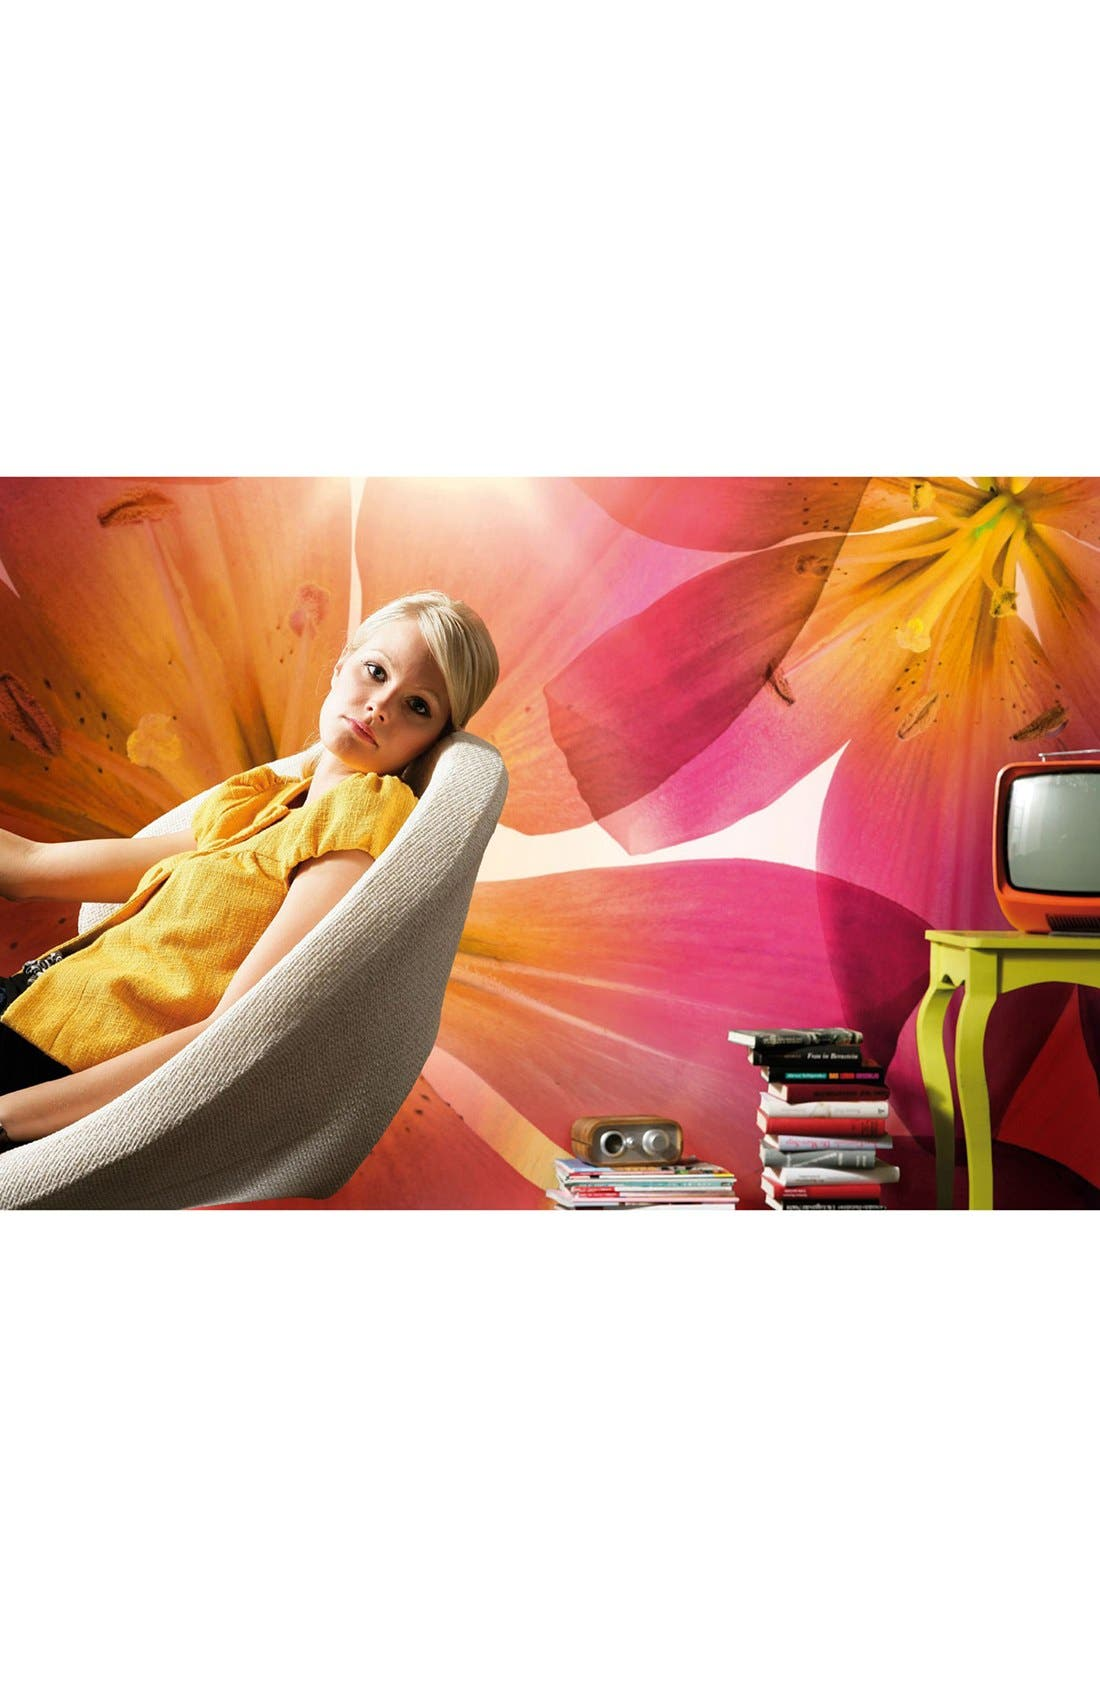 Main Image - Wallpops 'Summer Sun' Wall Mural (8-Panel)